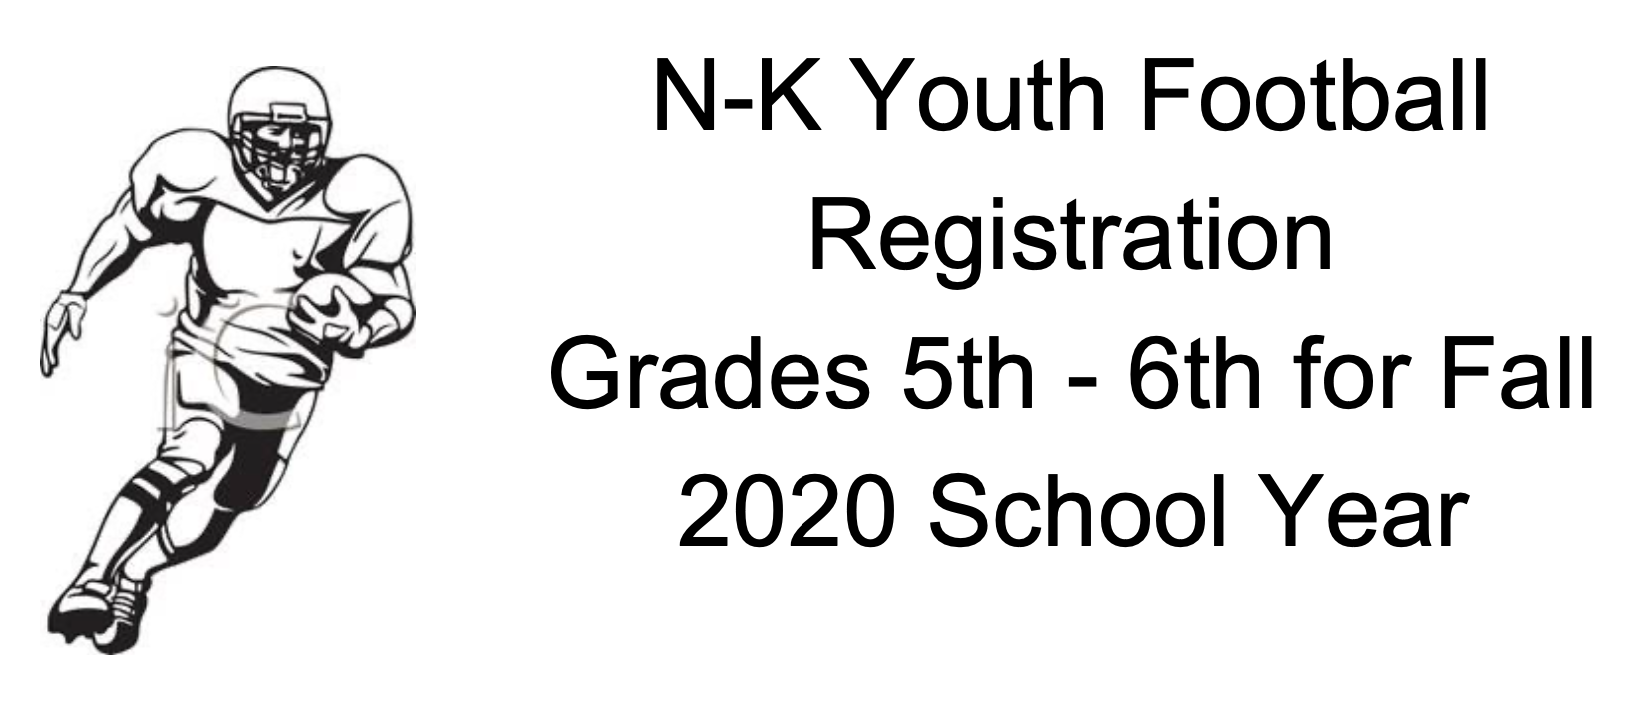 Header Image for NK Youth Football Registration Grades 5 & 6 for Fall 2020 School Year